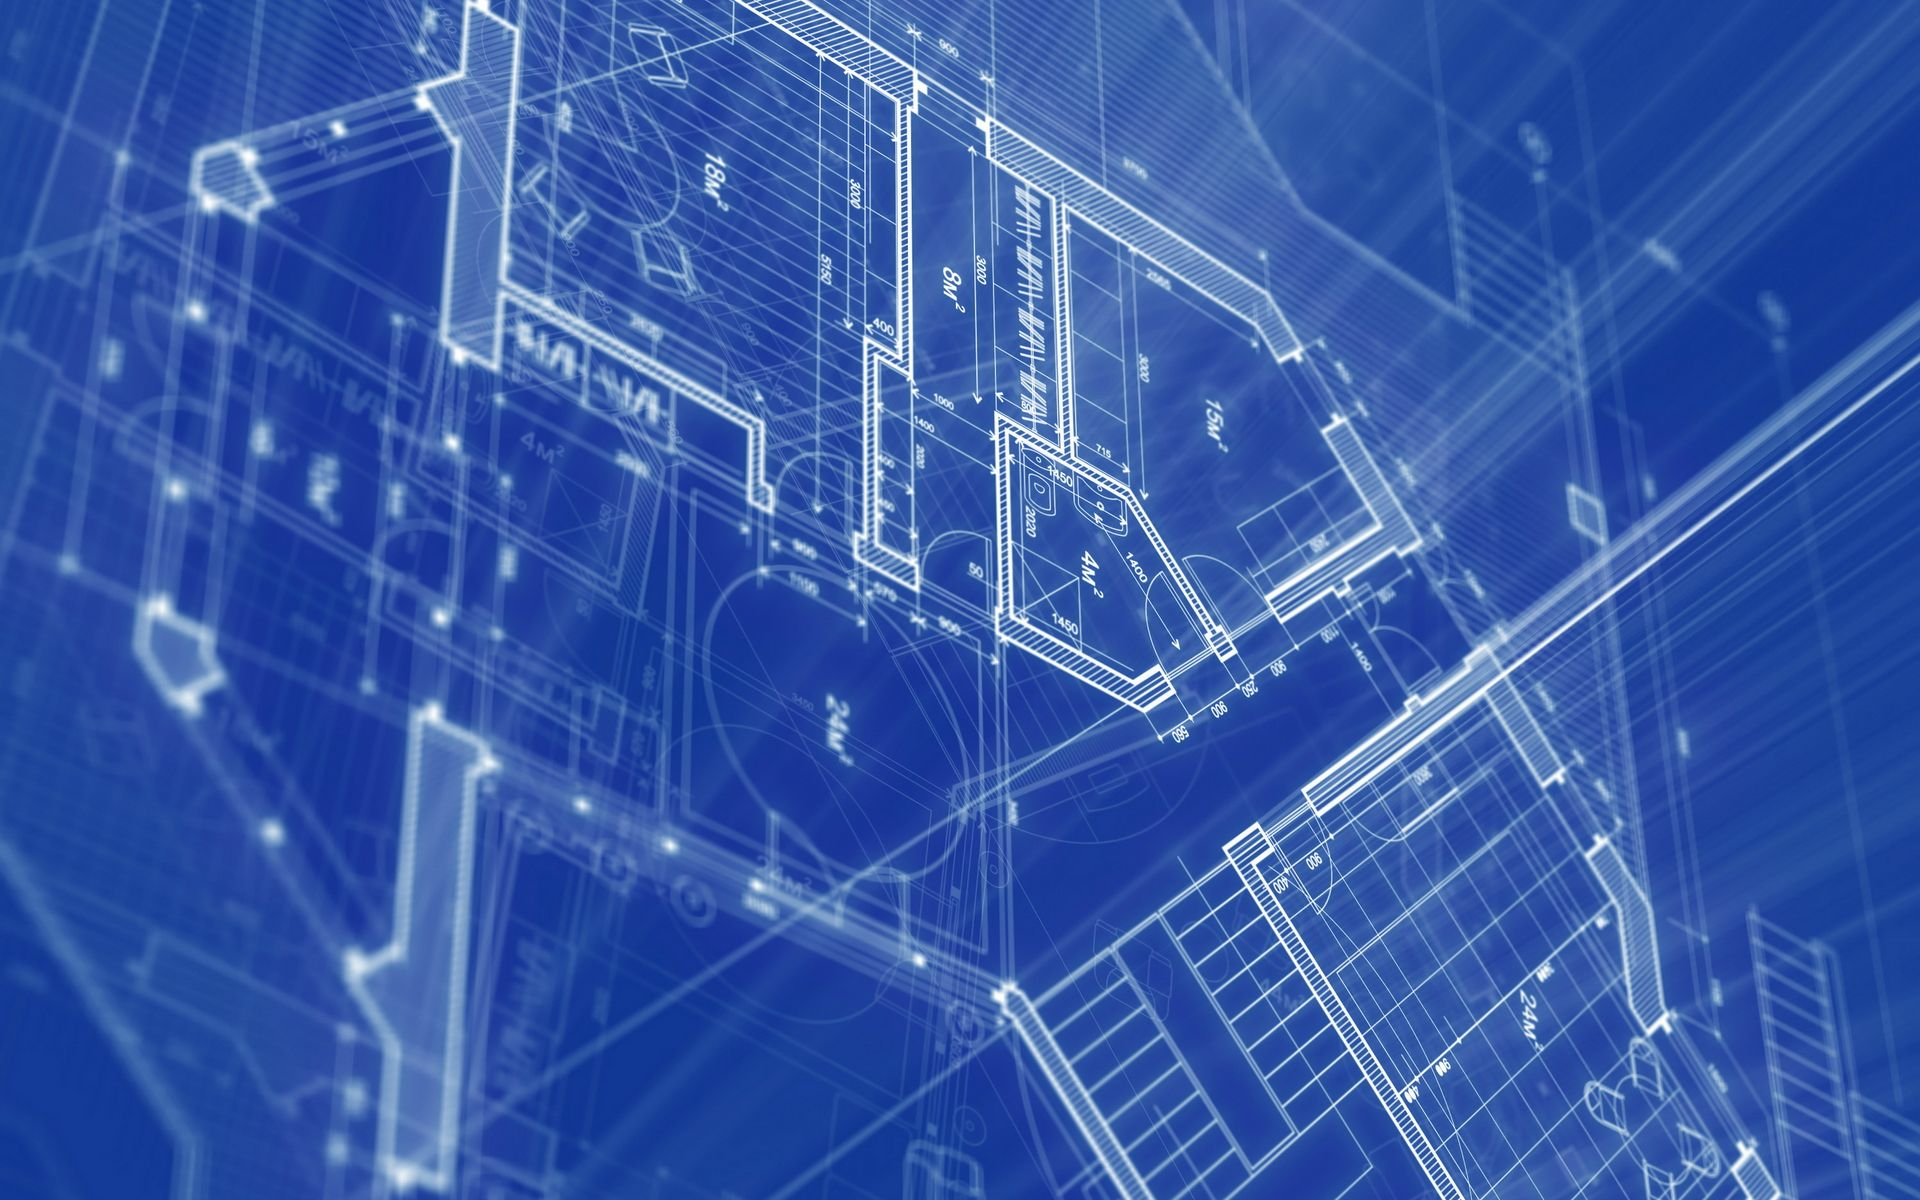 Architecture Blueprints Wallpaper blueprint architecture hd widescreen desktop wallpaper | blueprint